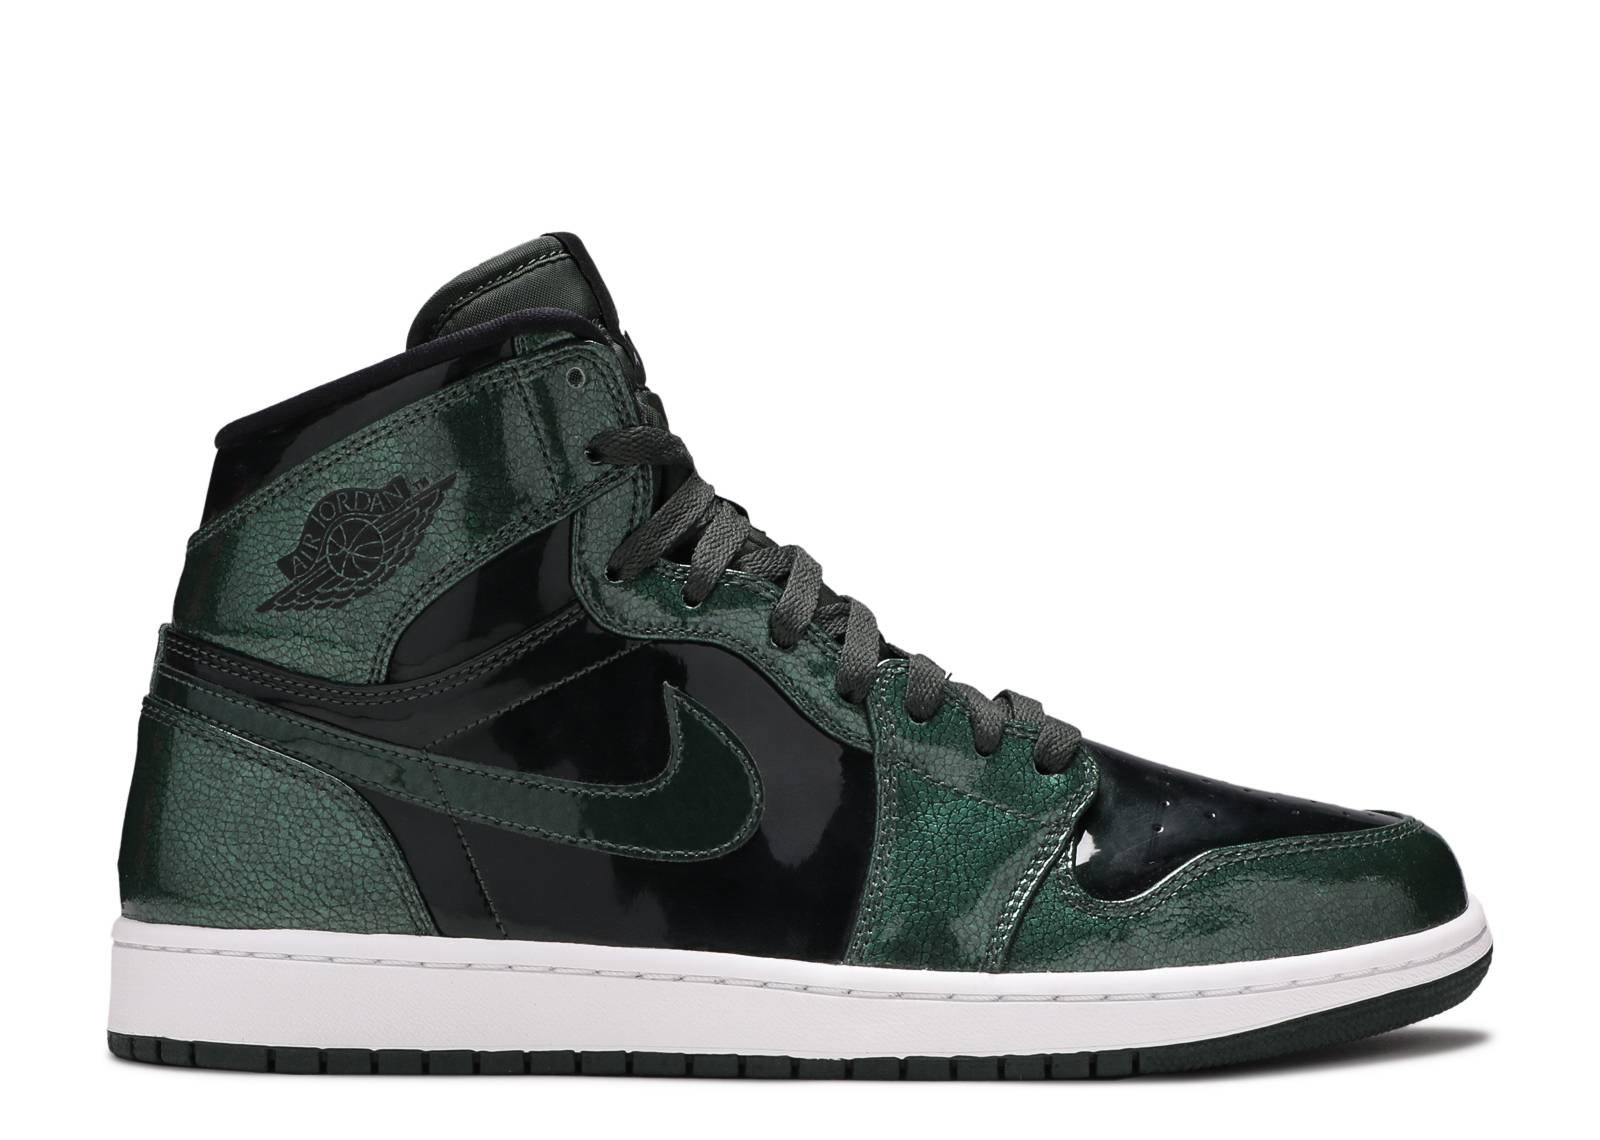 d8f1a6023822c0 Air Jordan 1 Retro High - Air Jordan - 332550 300 - grove green black-white